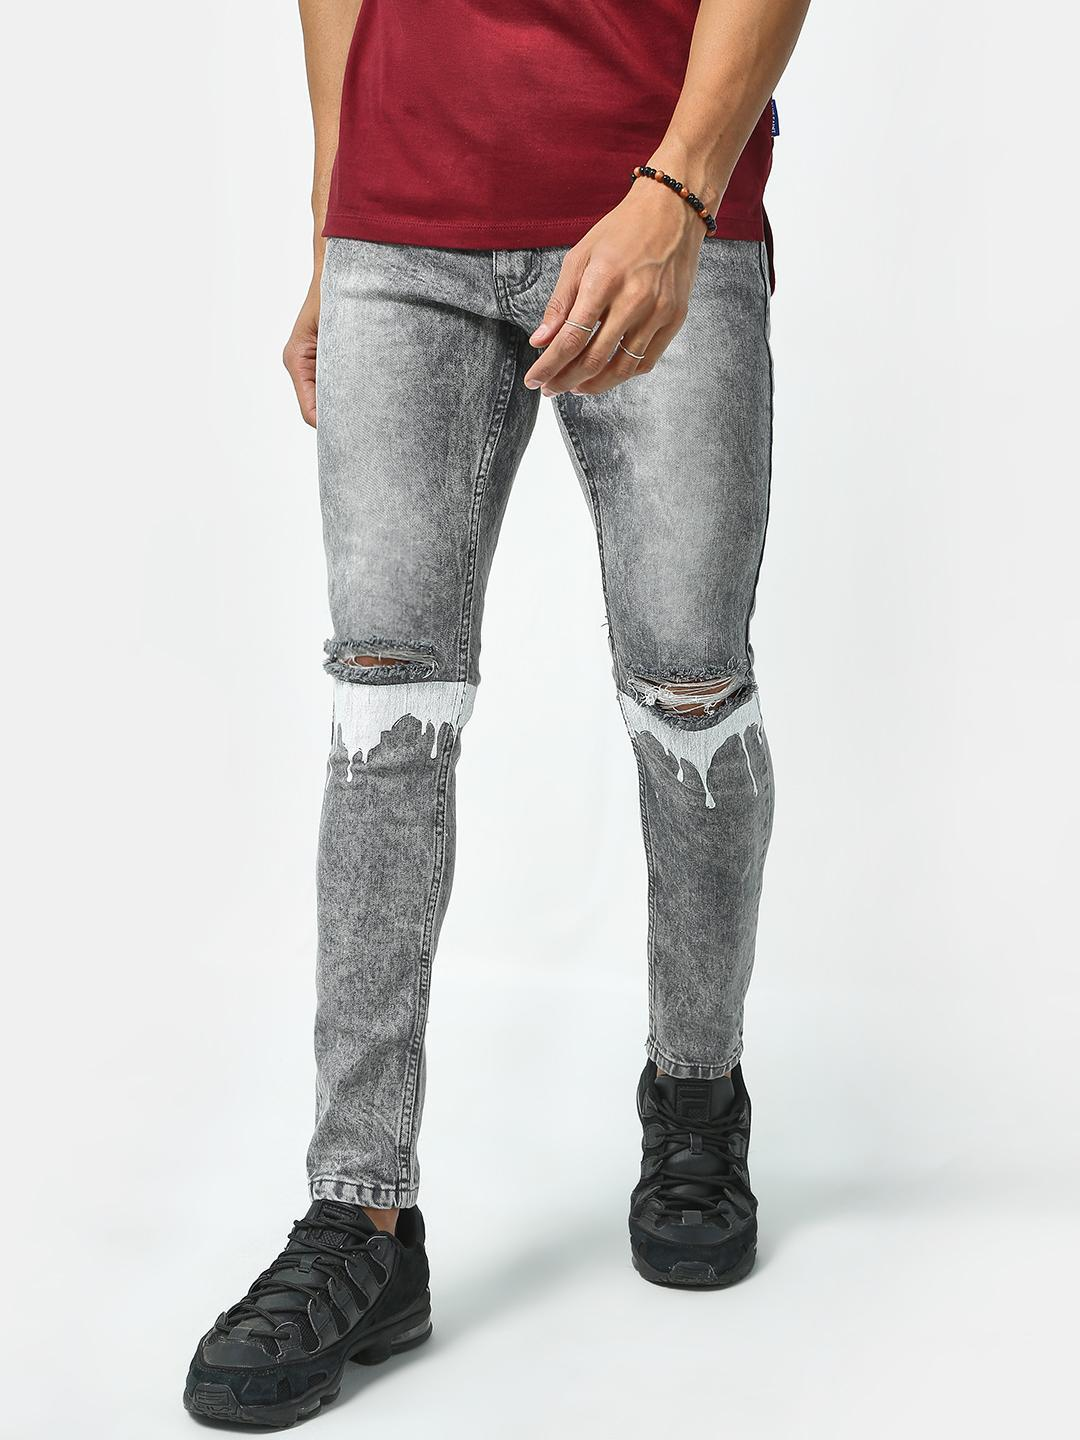 IMPACKT Grey Ripped Knee Mid Rise Jeans 1